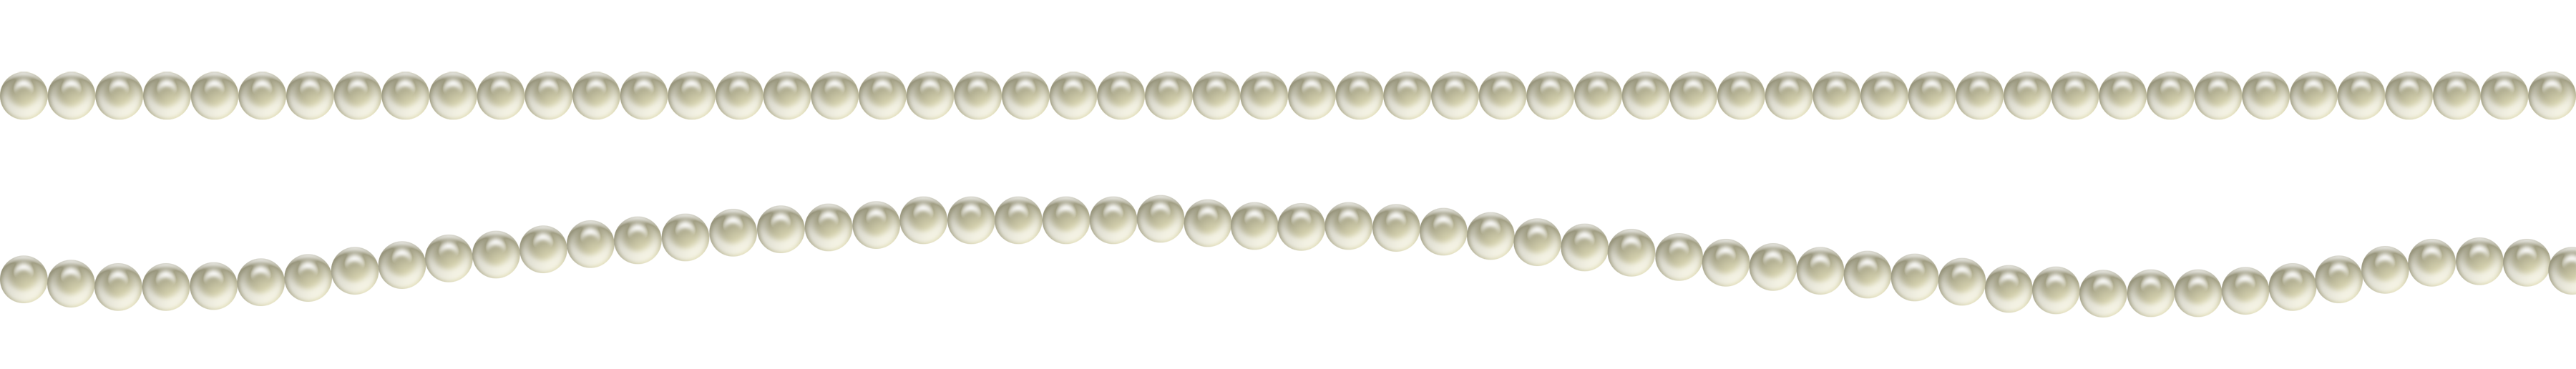 Download and use Pearls PNG in High Resolution